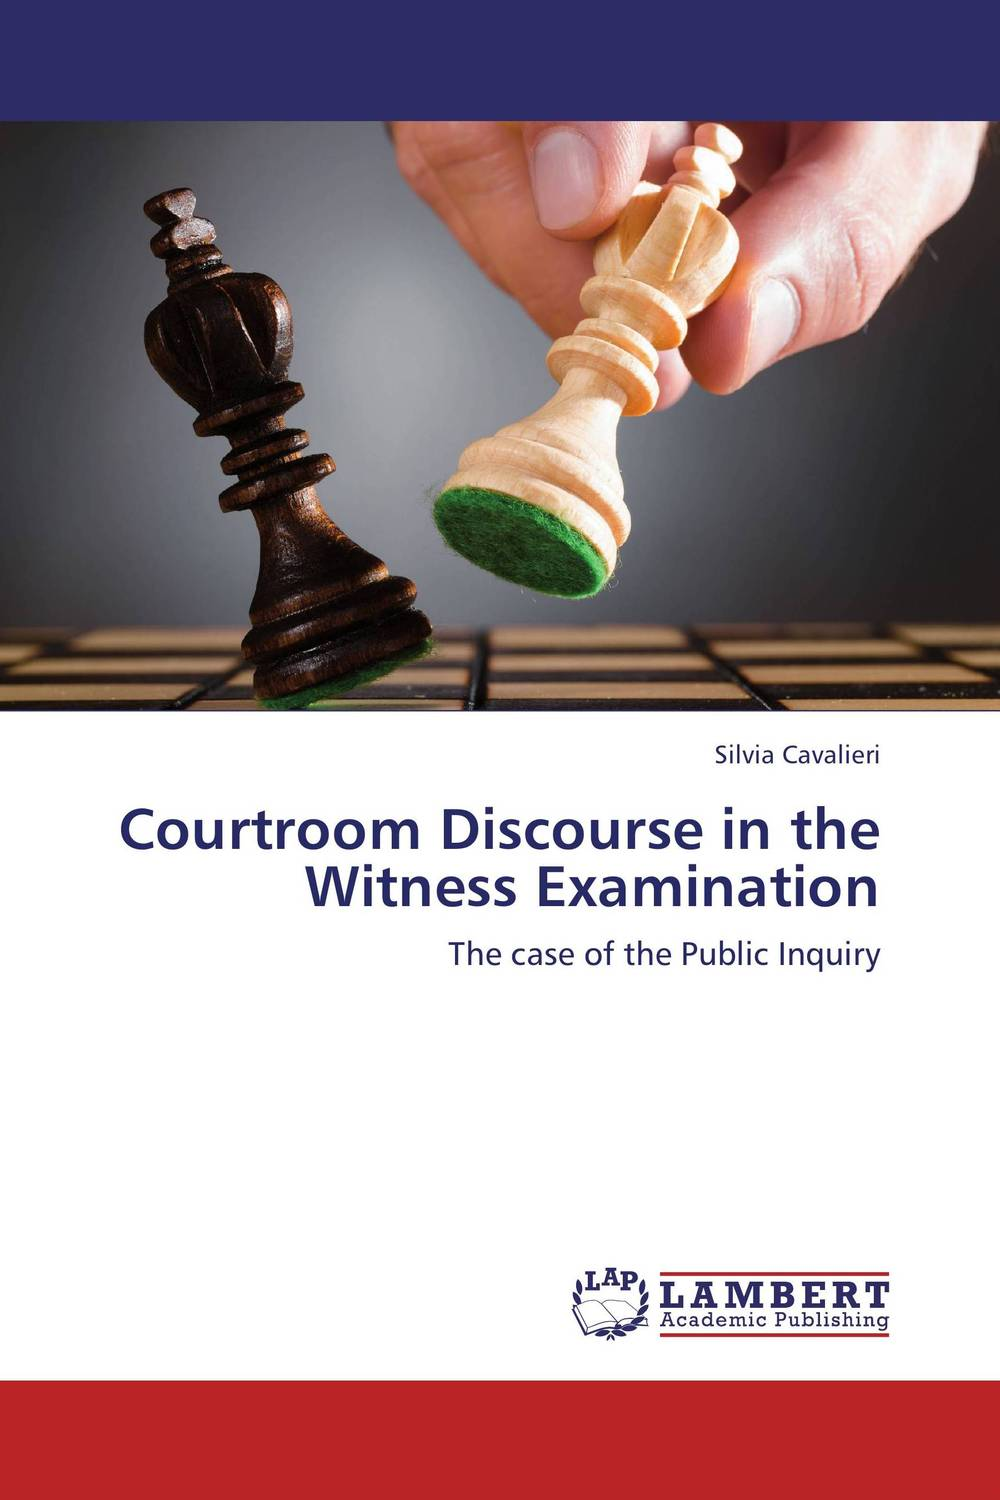 Courtroom Discourse in the Witness Examination linguistic analysis of modal verbs in legal documents